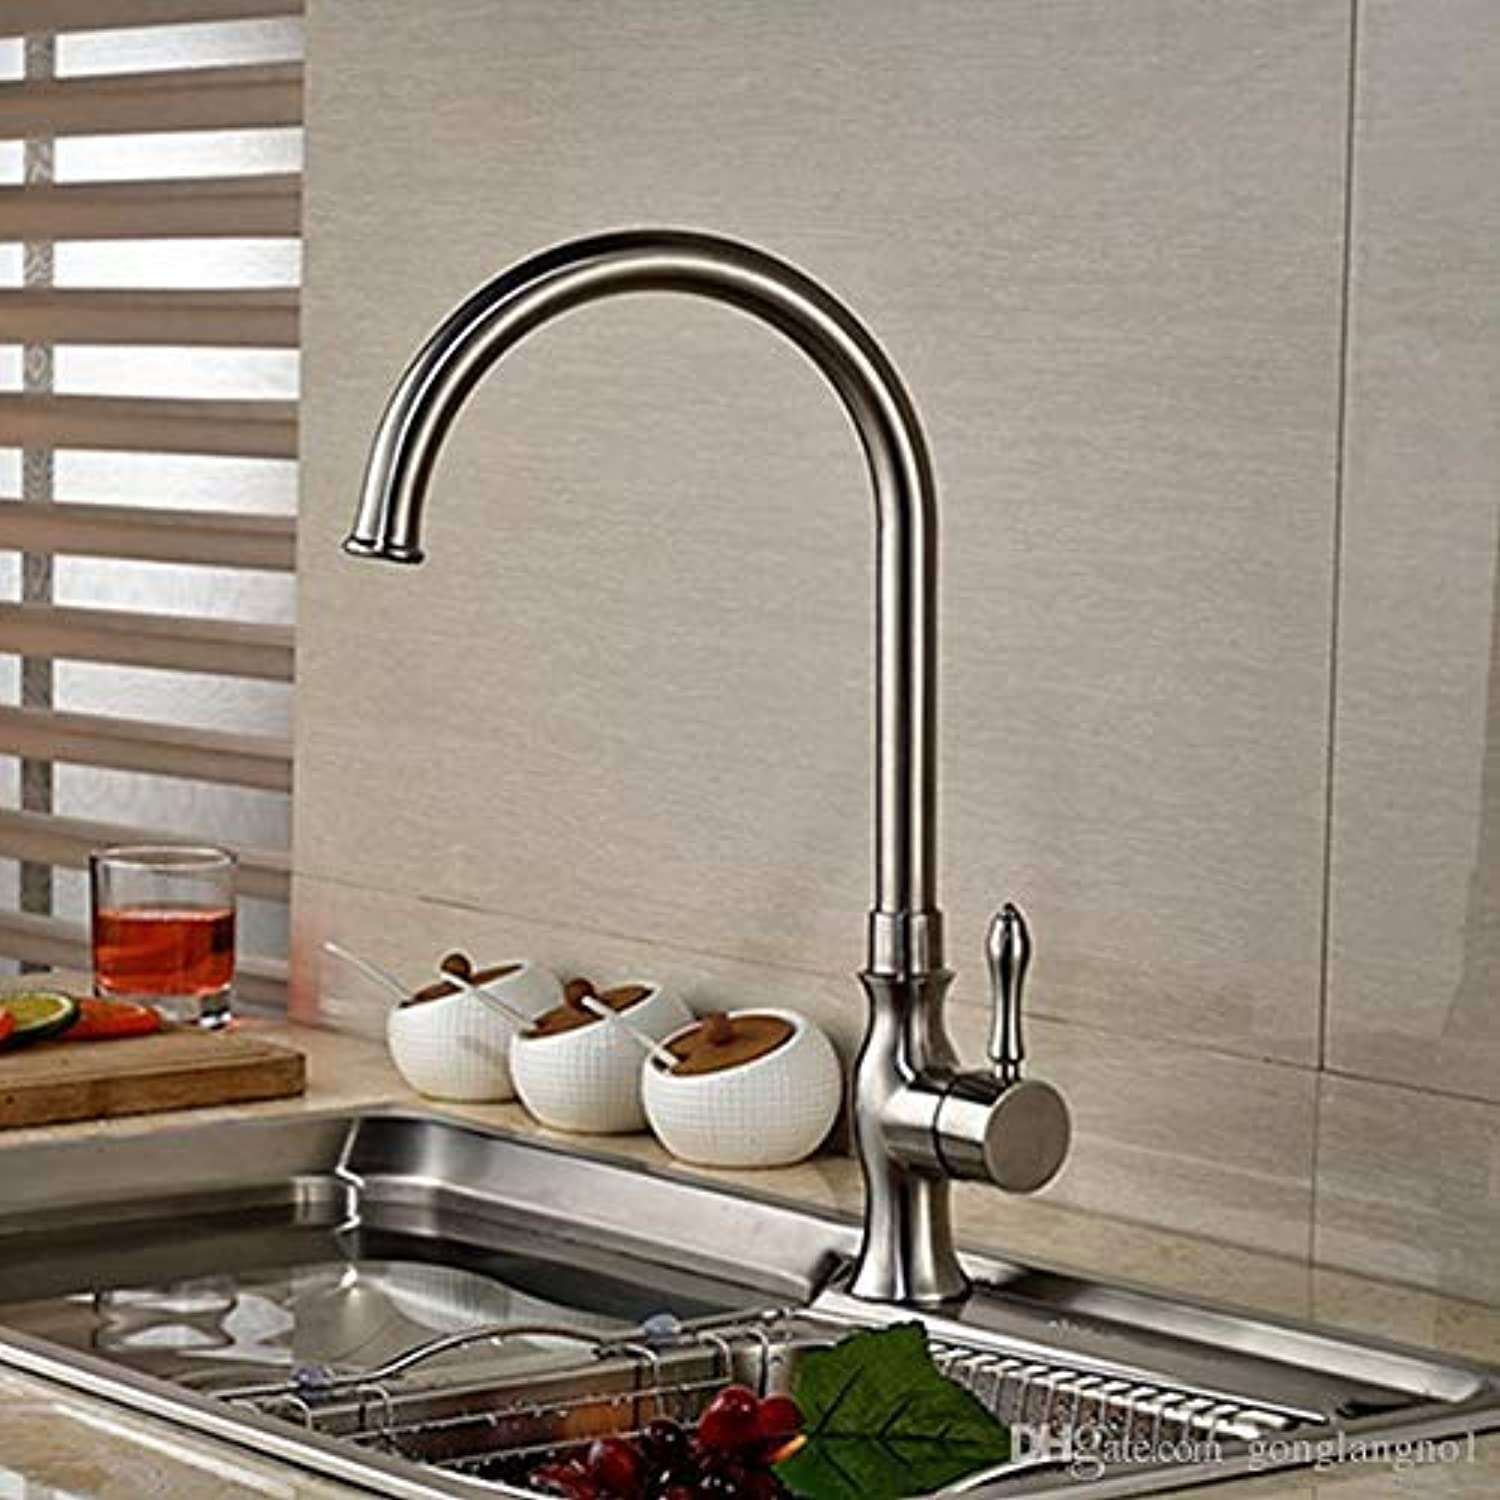 Oudan Wholesale and Retail Elegant Brushed Nickel Swivel Spout Kitchen Faucet Single Handle Hole Vessel Basin Mixer Tap Hot and Cold (color   -, Size   -)